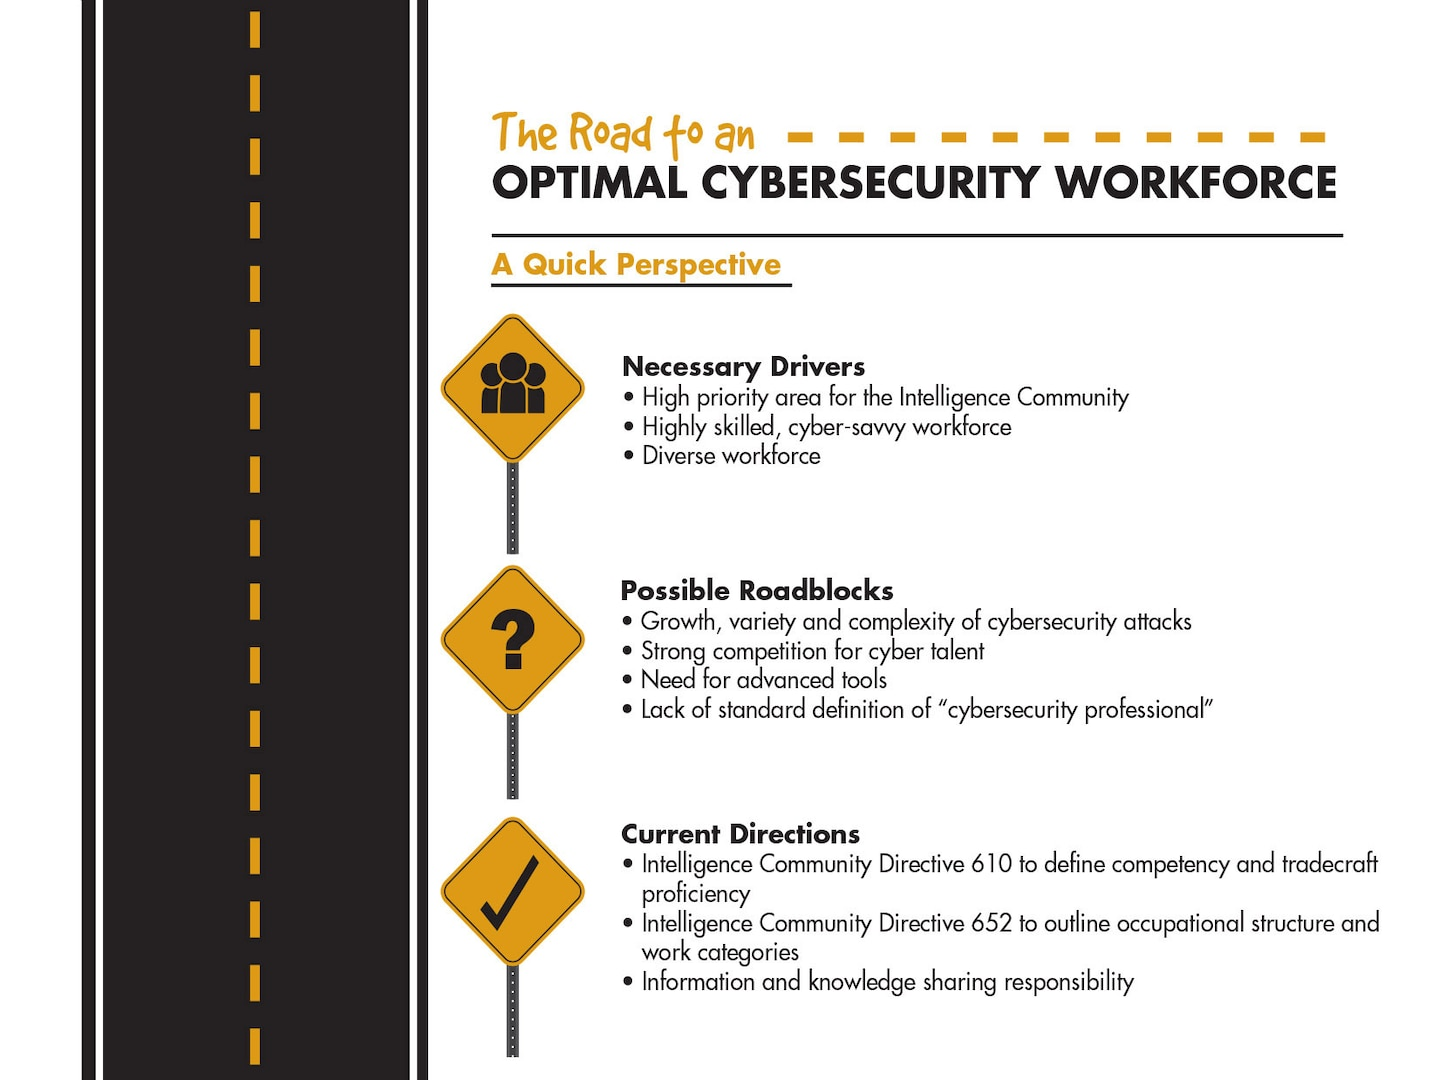 The Road to an Optimal Cybersecurity Workforce Infographic